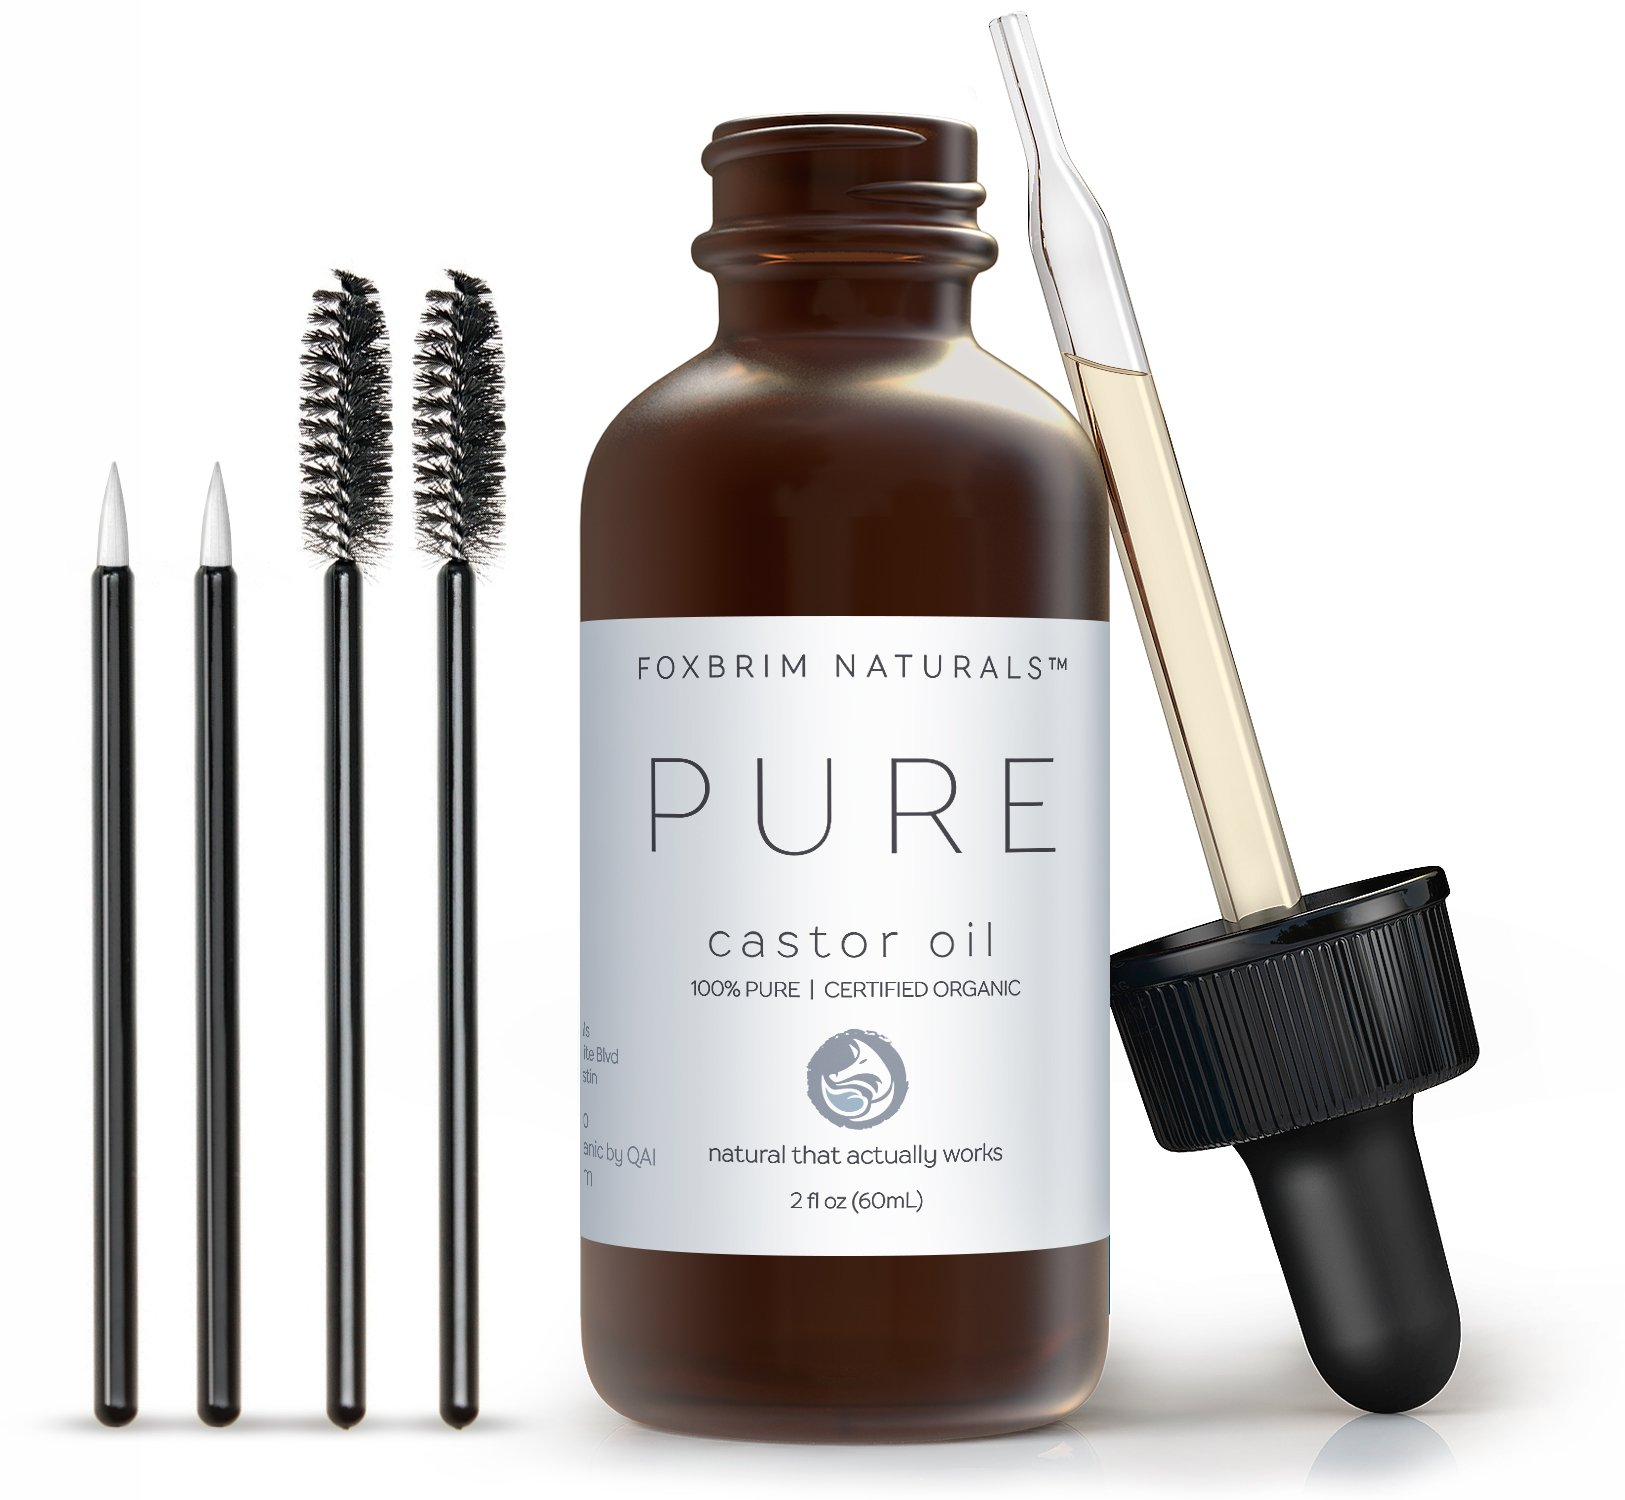 Organic Castor Oil - 2oz - 100% Pure - Cold Pressed - USDA Certified - Hexane Free - For Hair, Skin, Eyelashes, Eyebrows & Nails With Treatment Applicator Kit - by Foxbrim